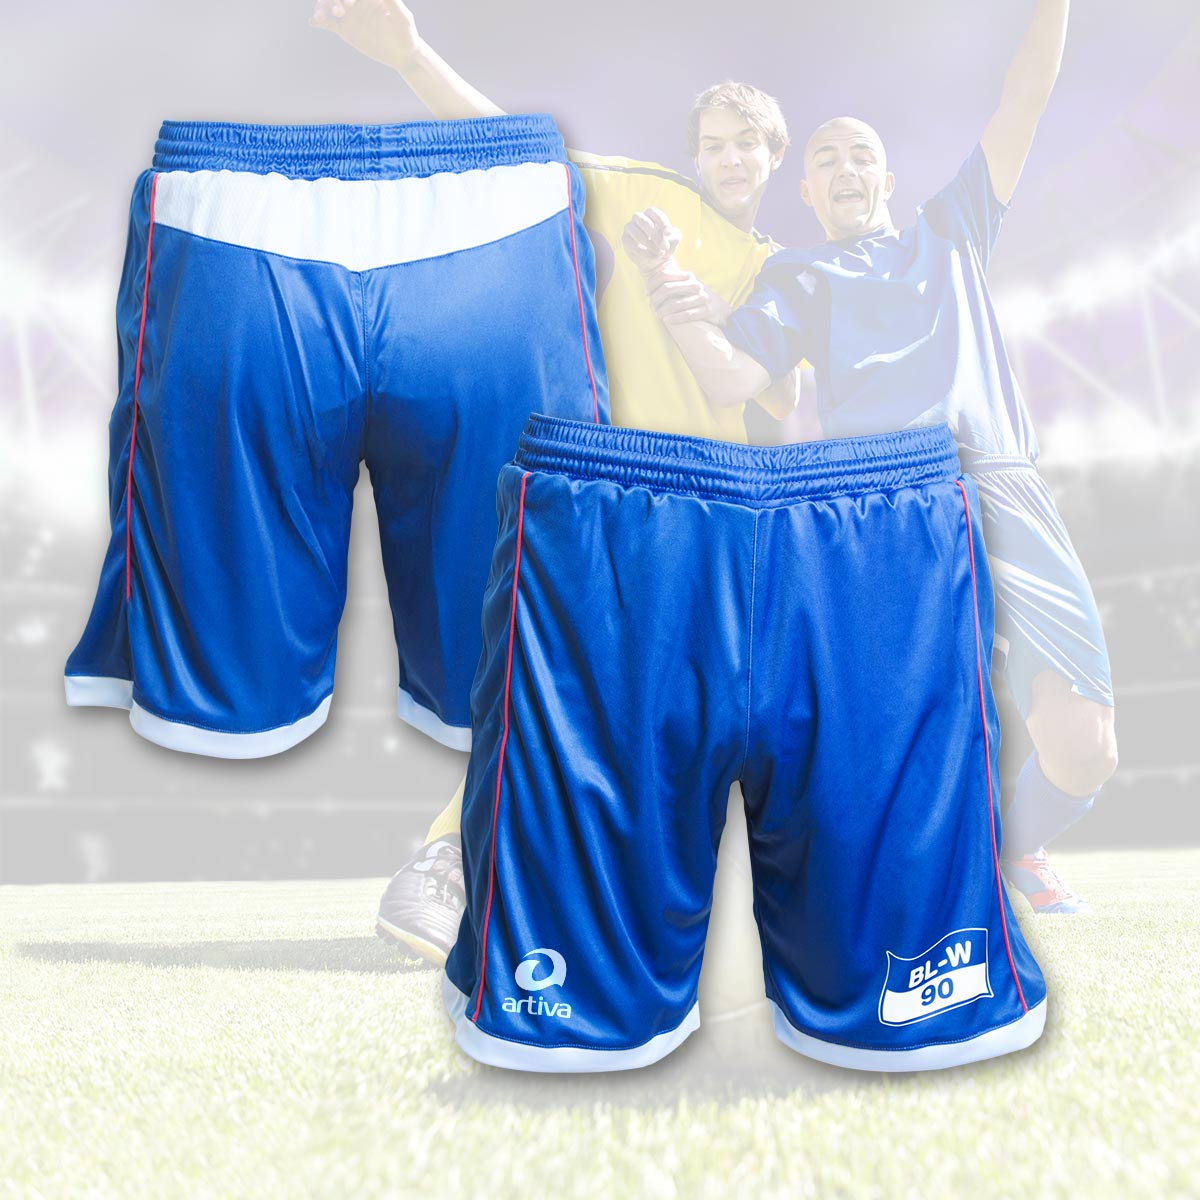 Individuelle Fußball-Shorts